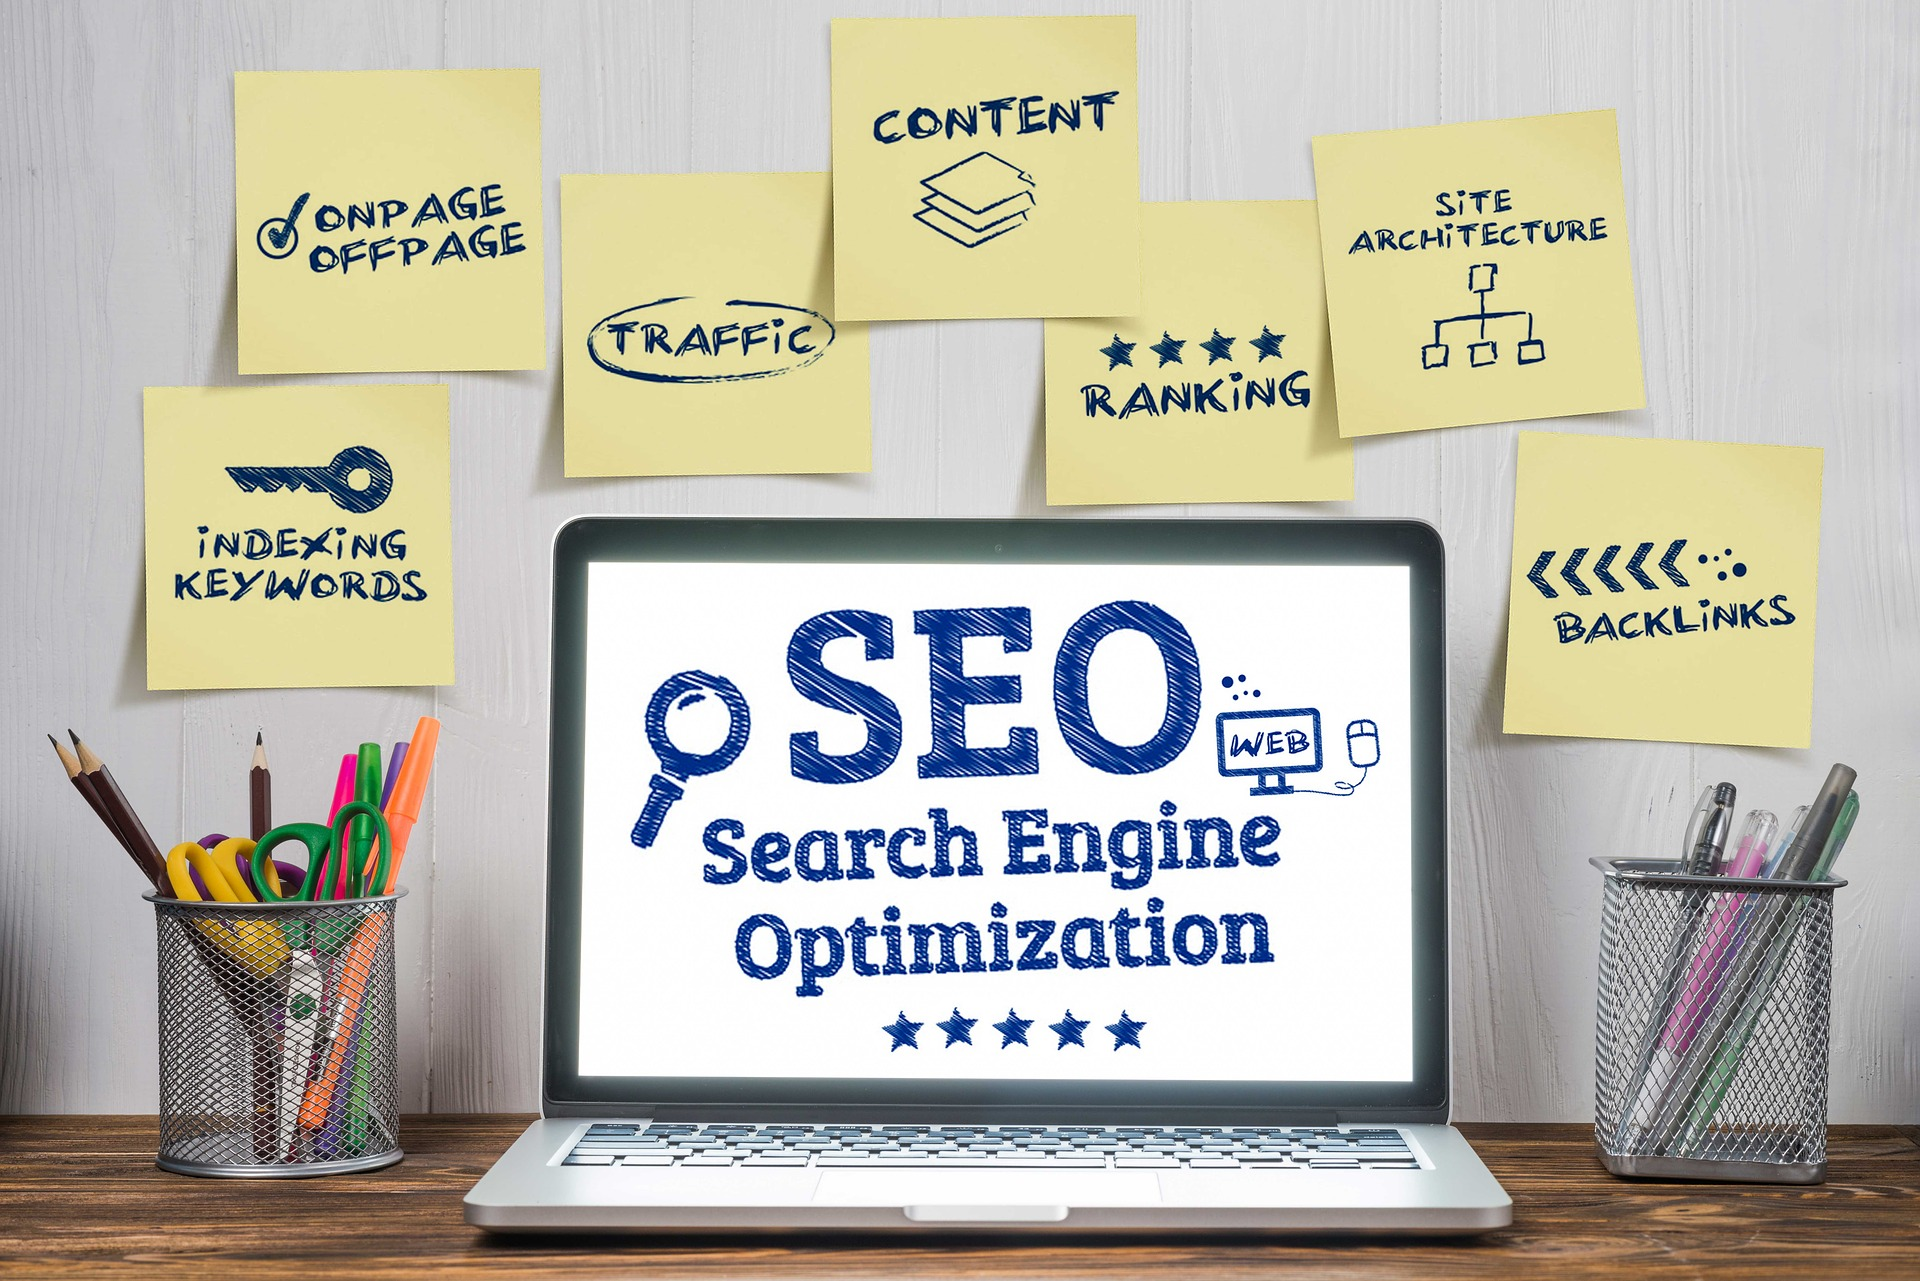 As this is an era of digital marketing, presentation of businesses online is very important. Companies use different strategies to increase their website ranking to attract more number of visitors, and to make it possible, the Search Engine Optimization (SEO) role comes into play here.